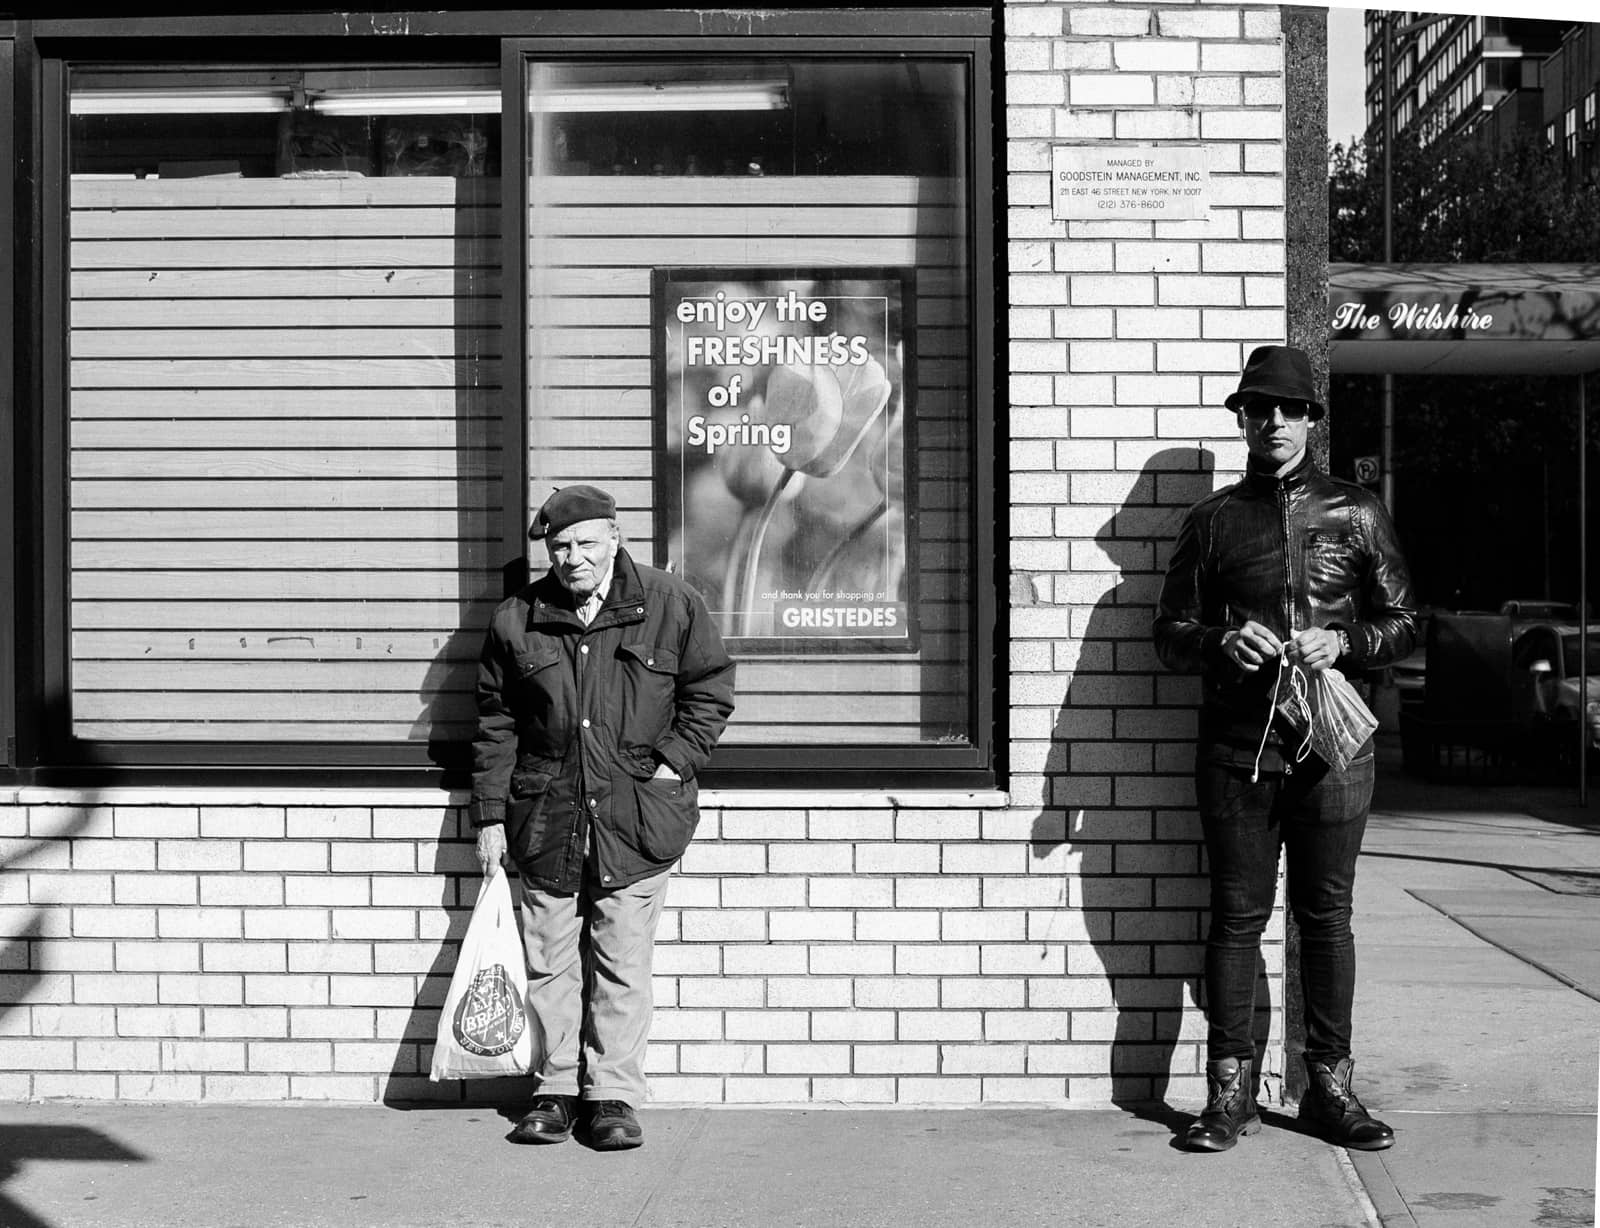 An older man and a young main waiting for the bus